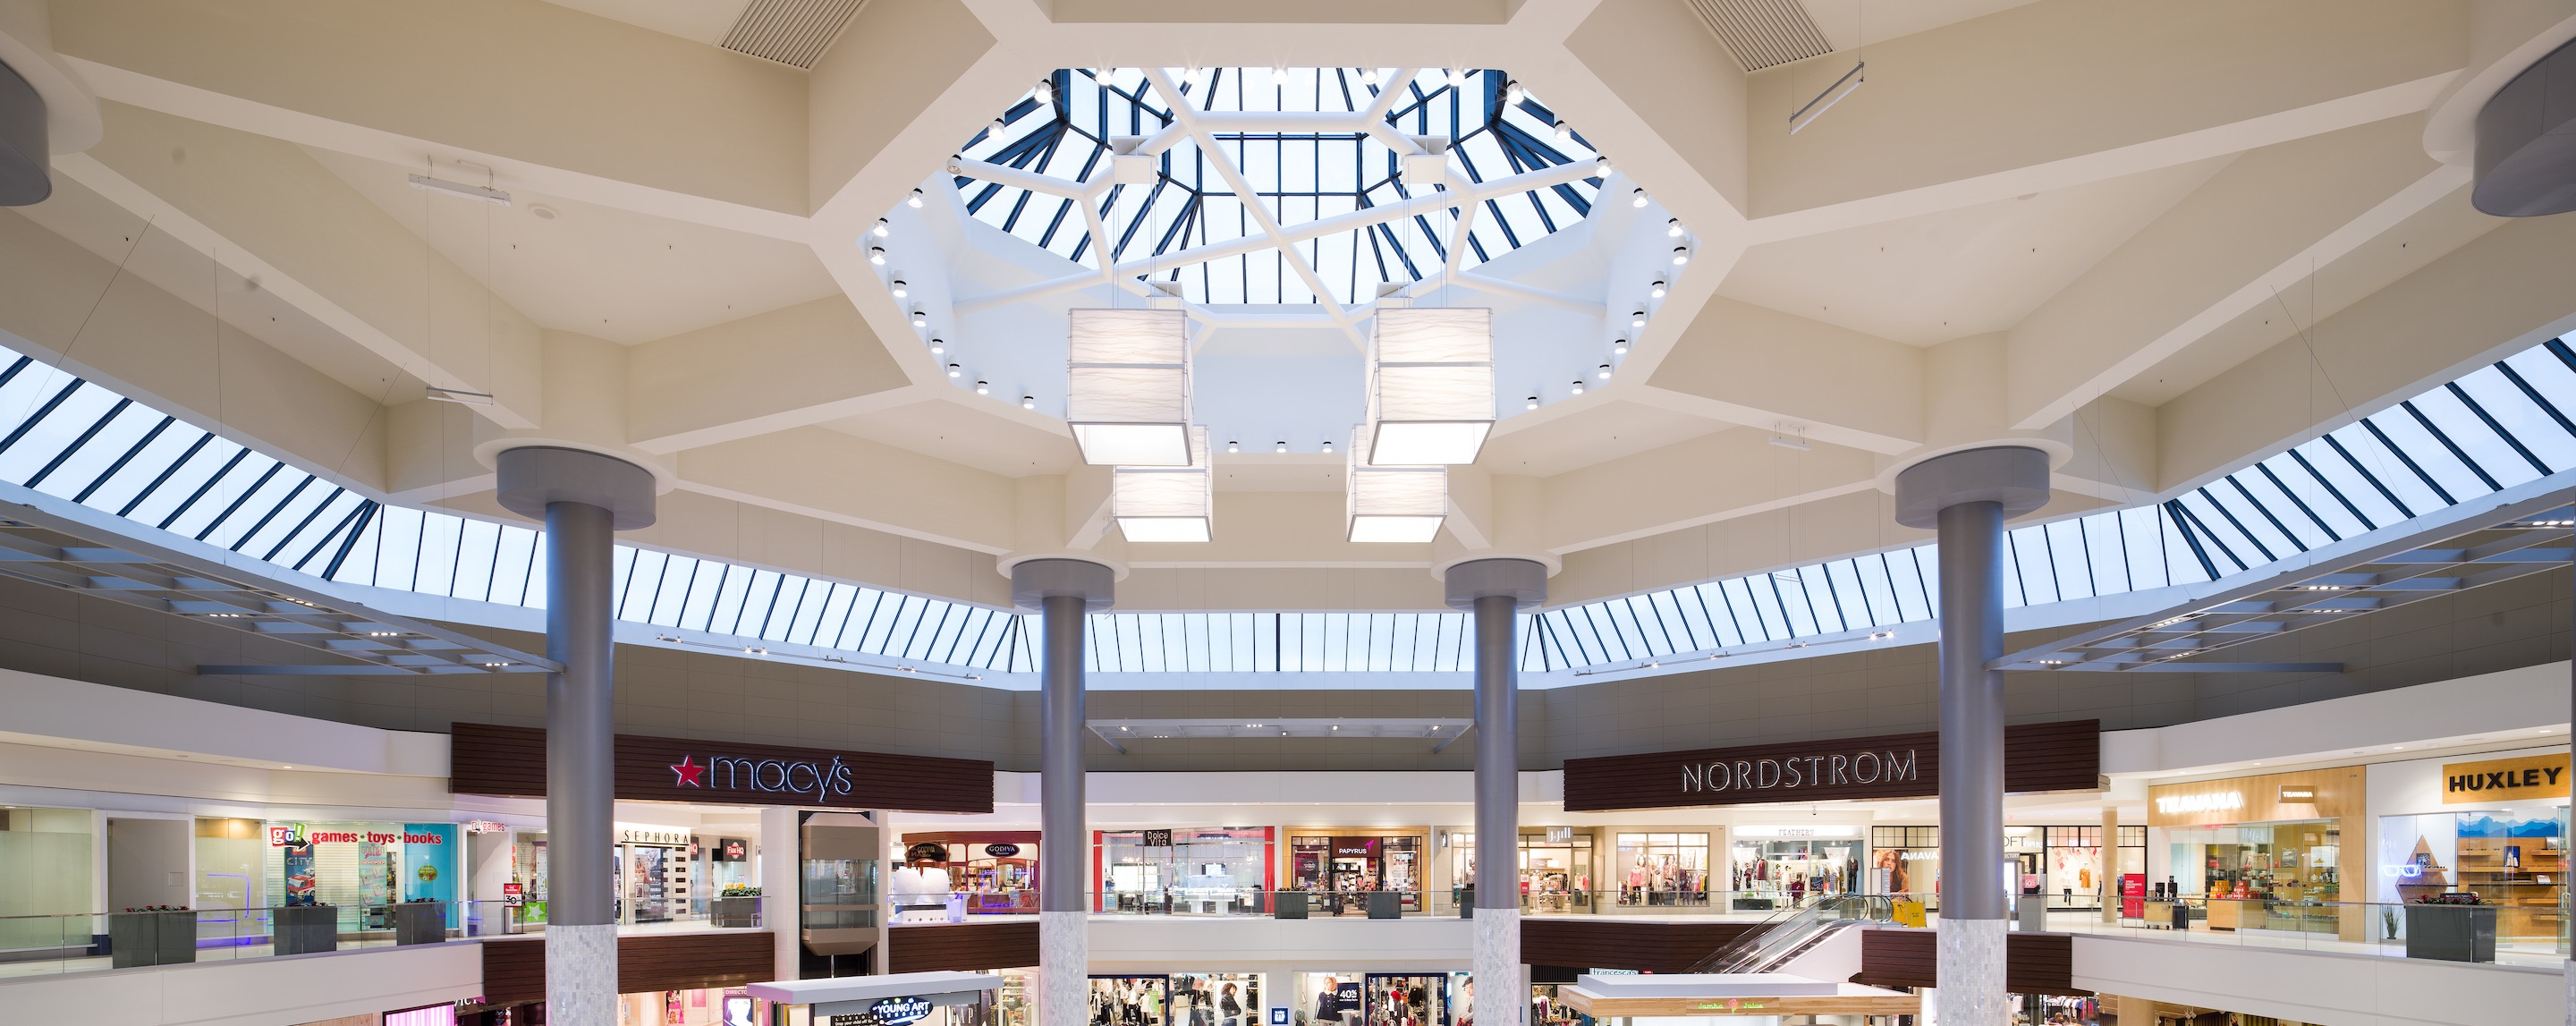 Photo of mall ceiling